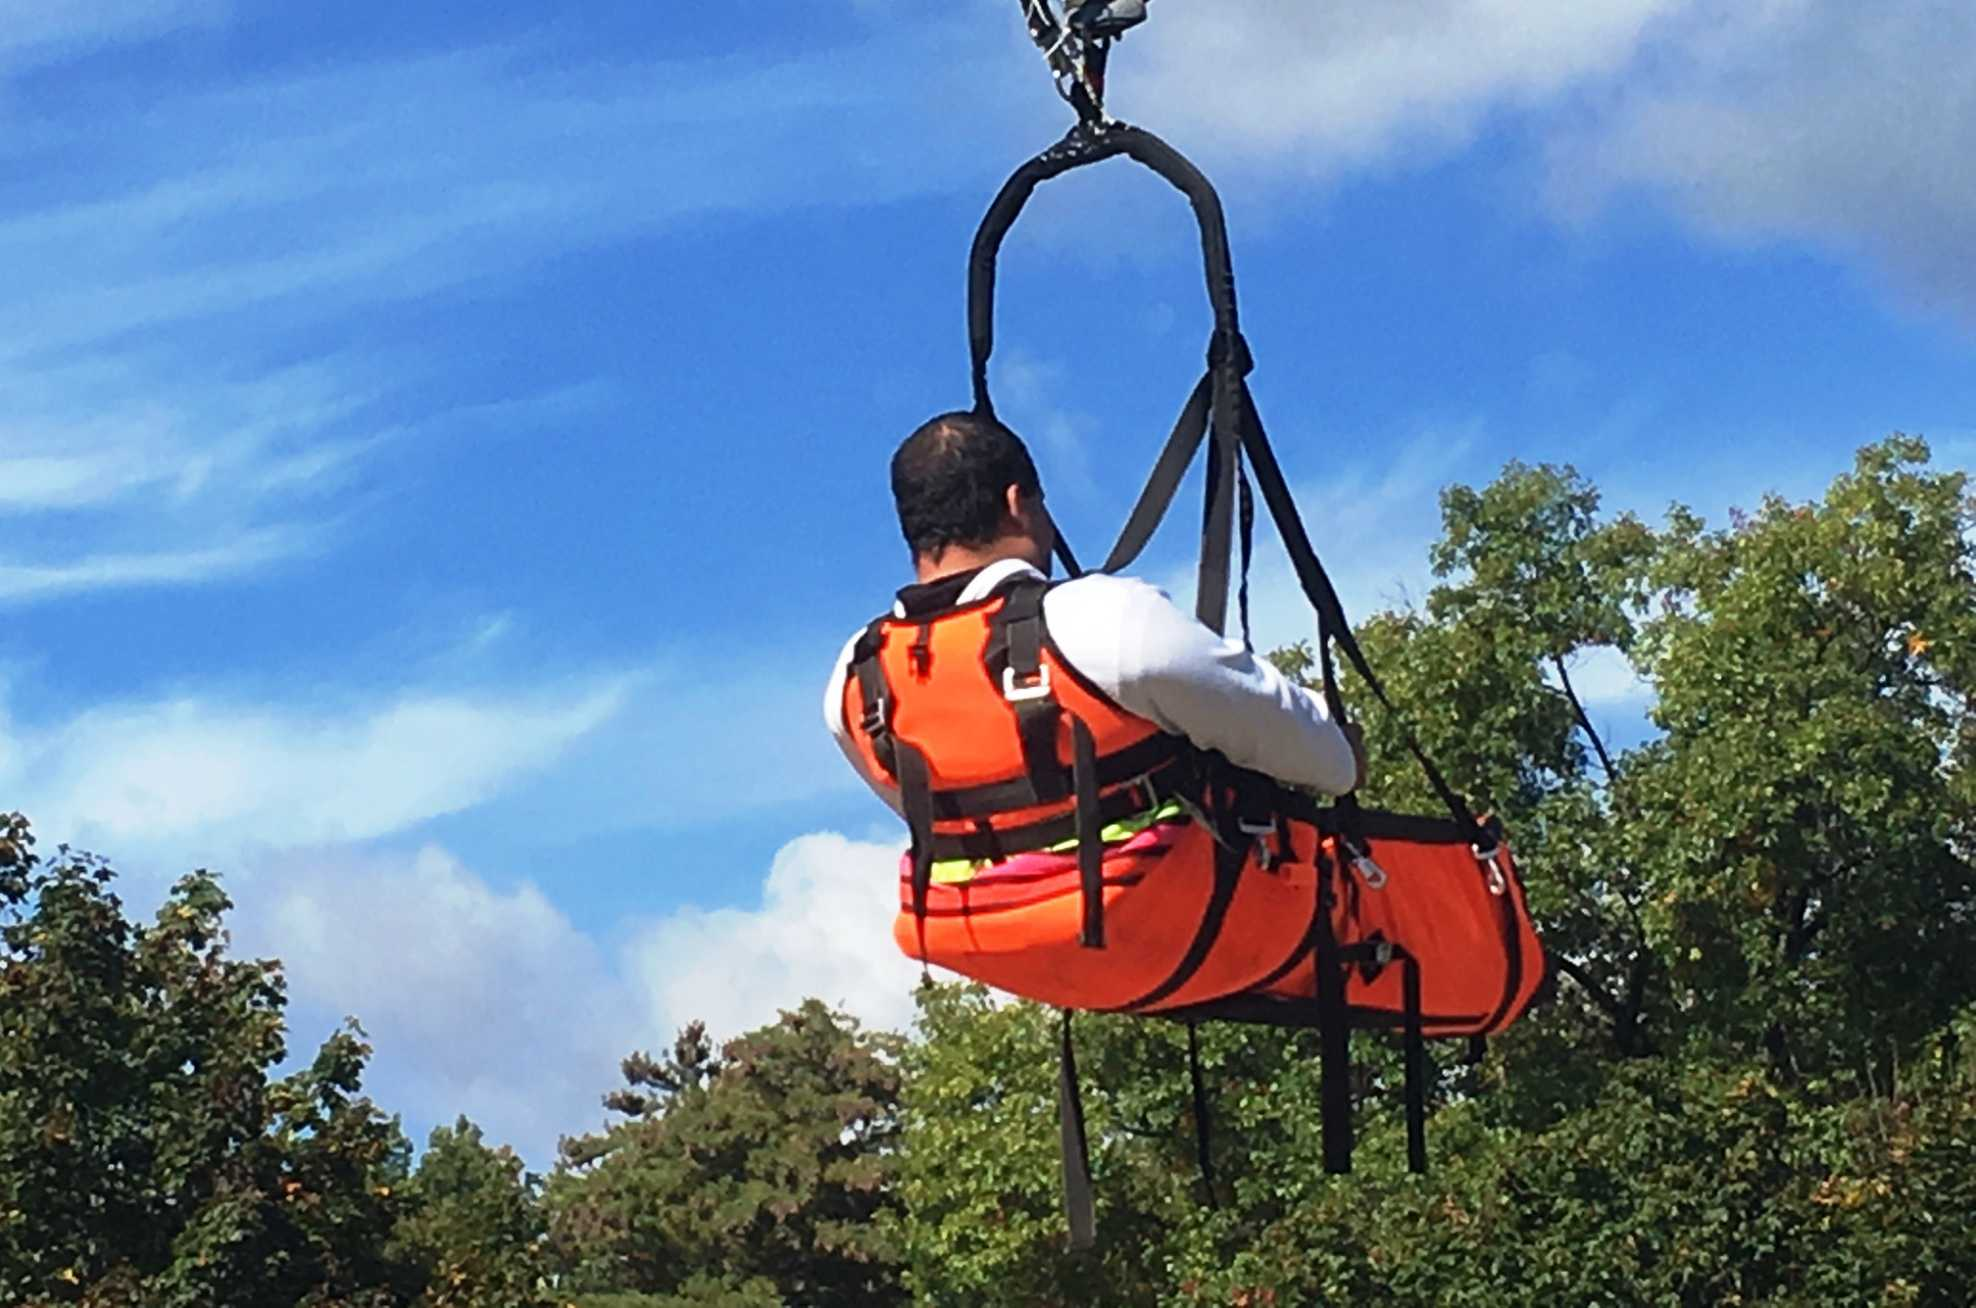 Ride Entertainment and Skycoaster reveal new SkySled harness at IAAPA Attractions Expo